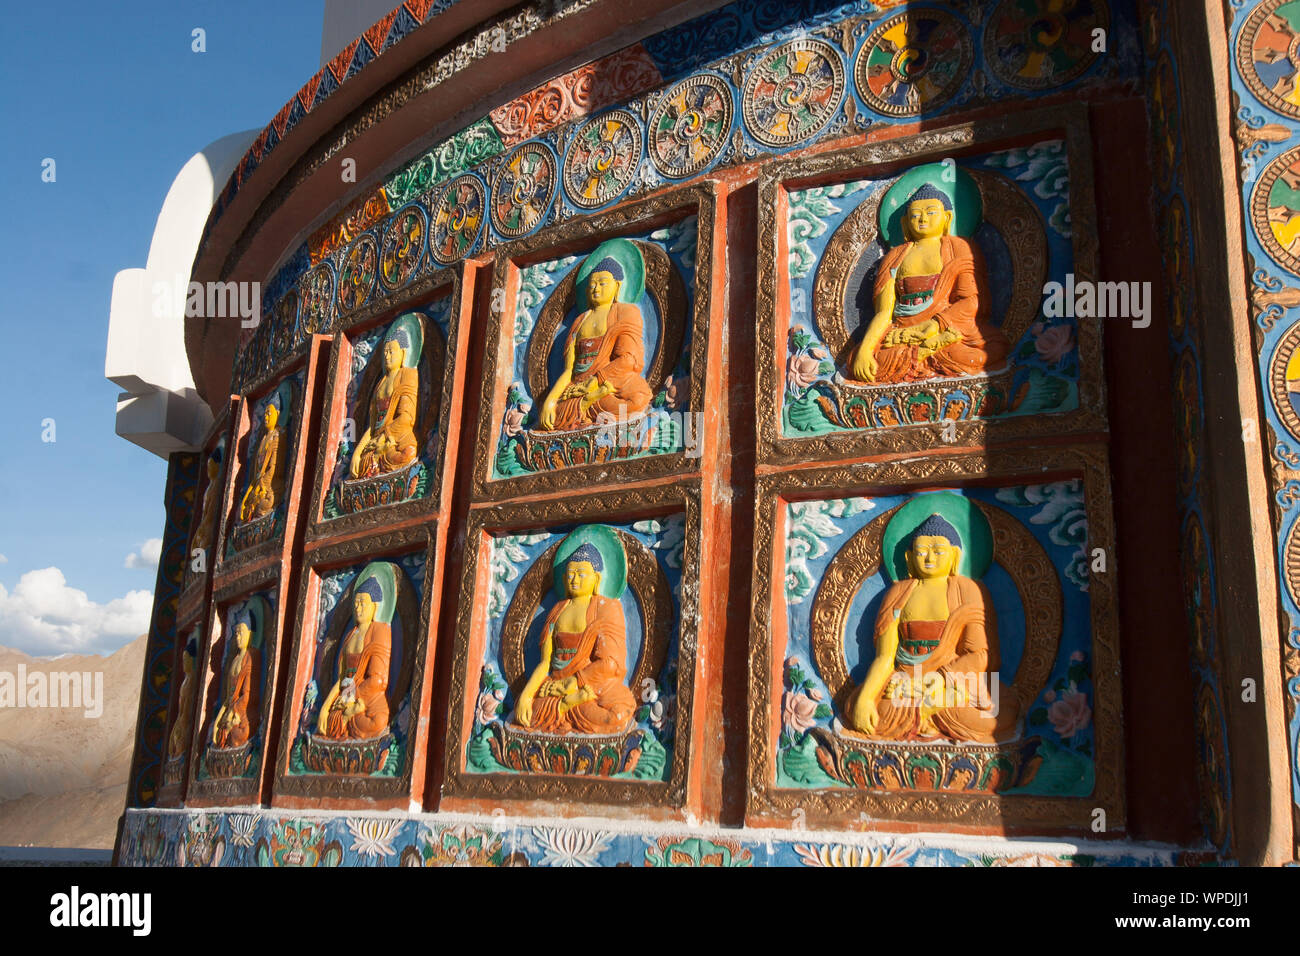 Shanti Stupa, Shanti Stupa is a Buddhist white-domed stupa on a hilltop in Chanspa, Leh district, Ladakh, in the north India. Stock Photo